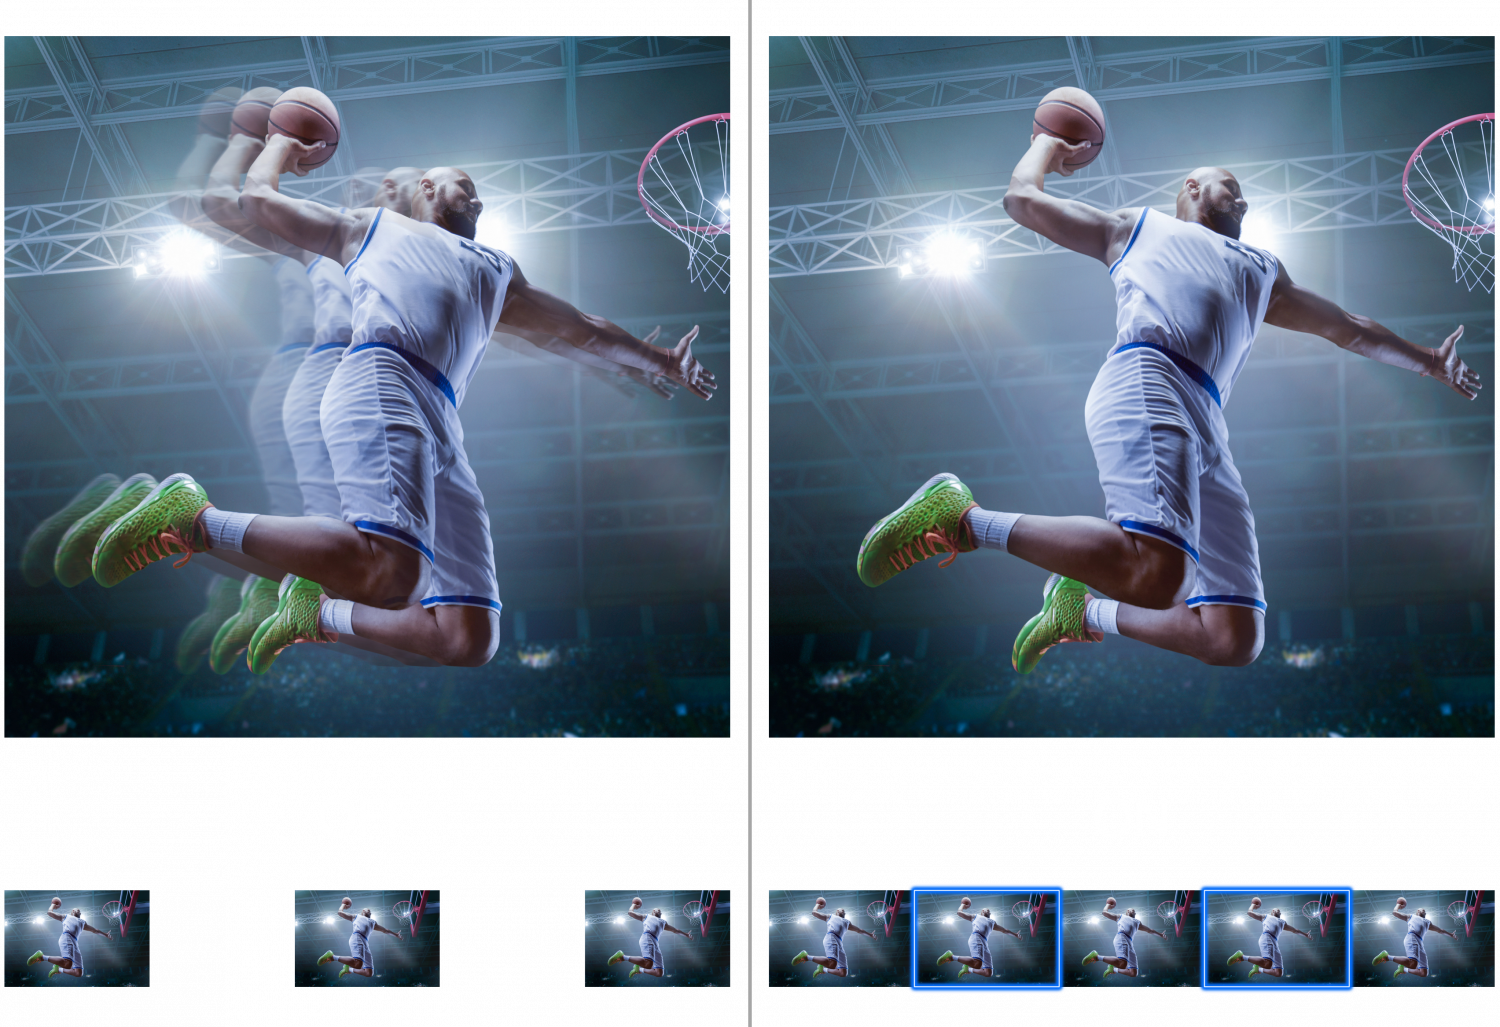 Two images side by side of man playing basketball with different image quality's, the left is blurred, the right is clear